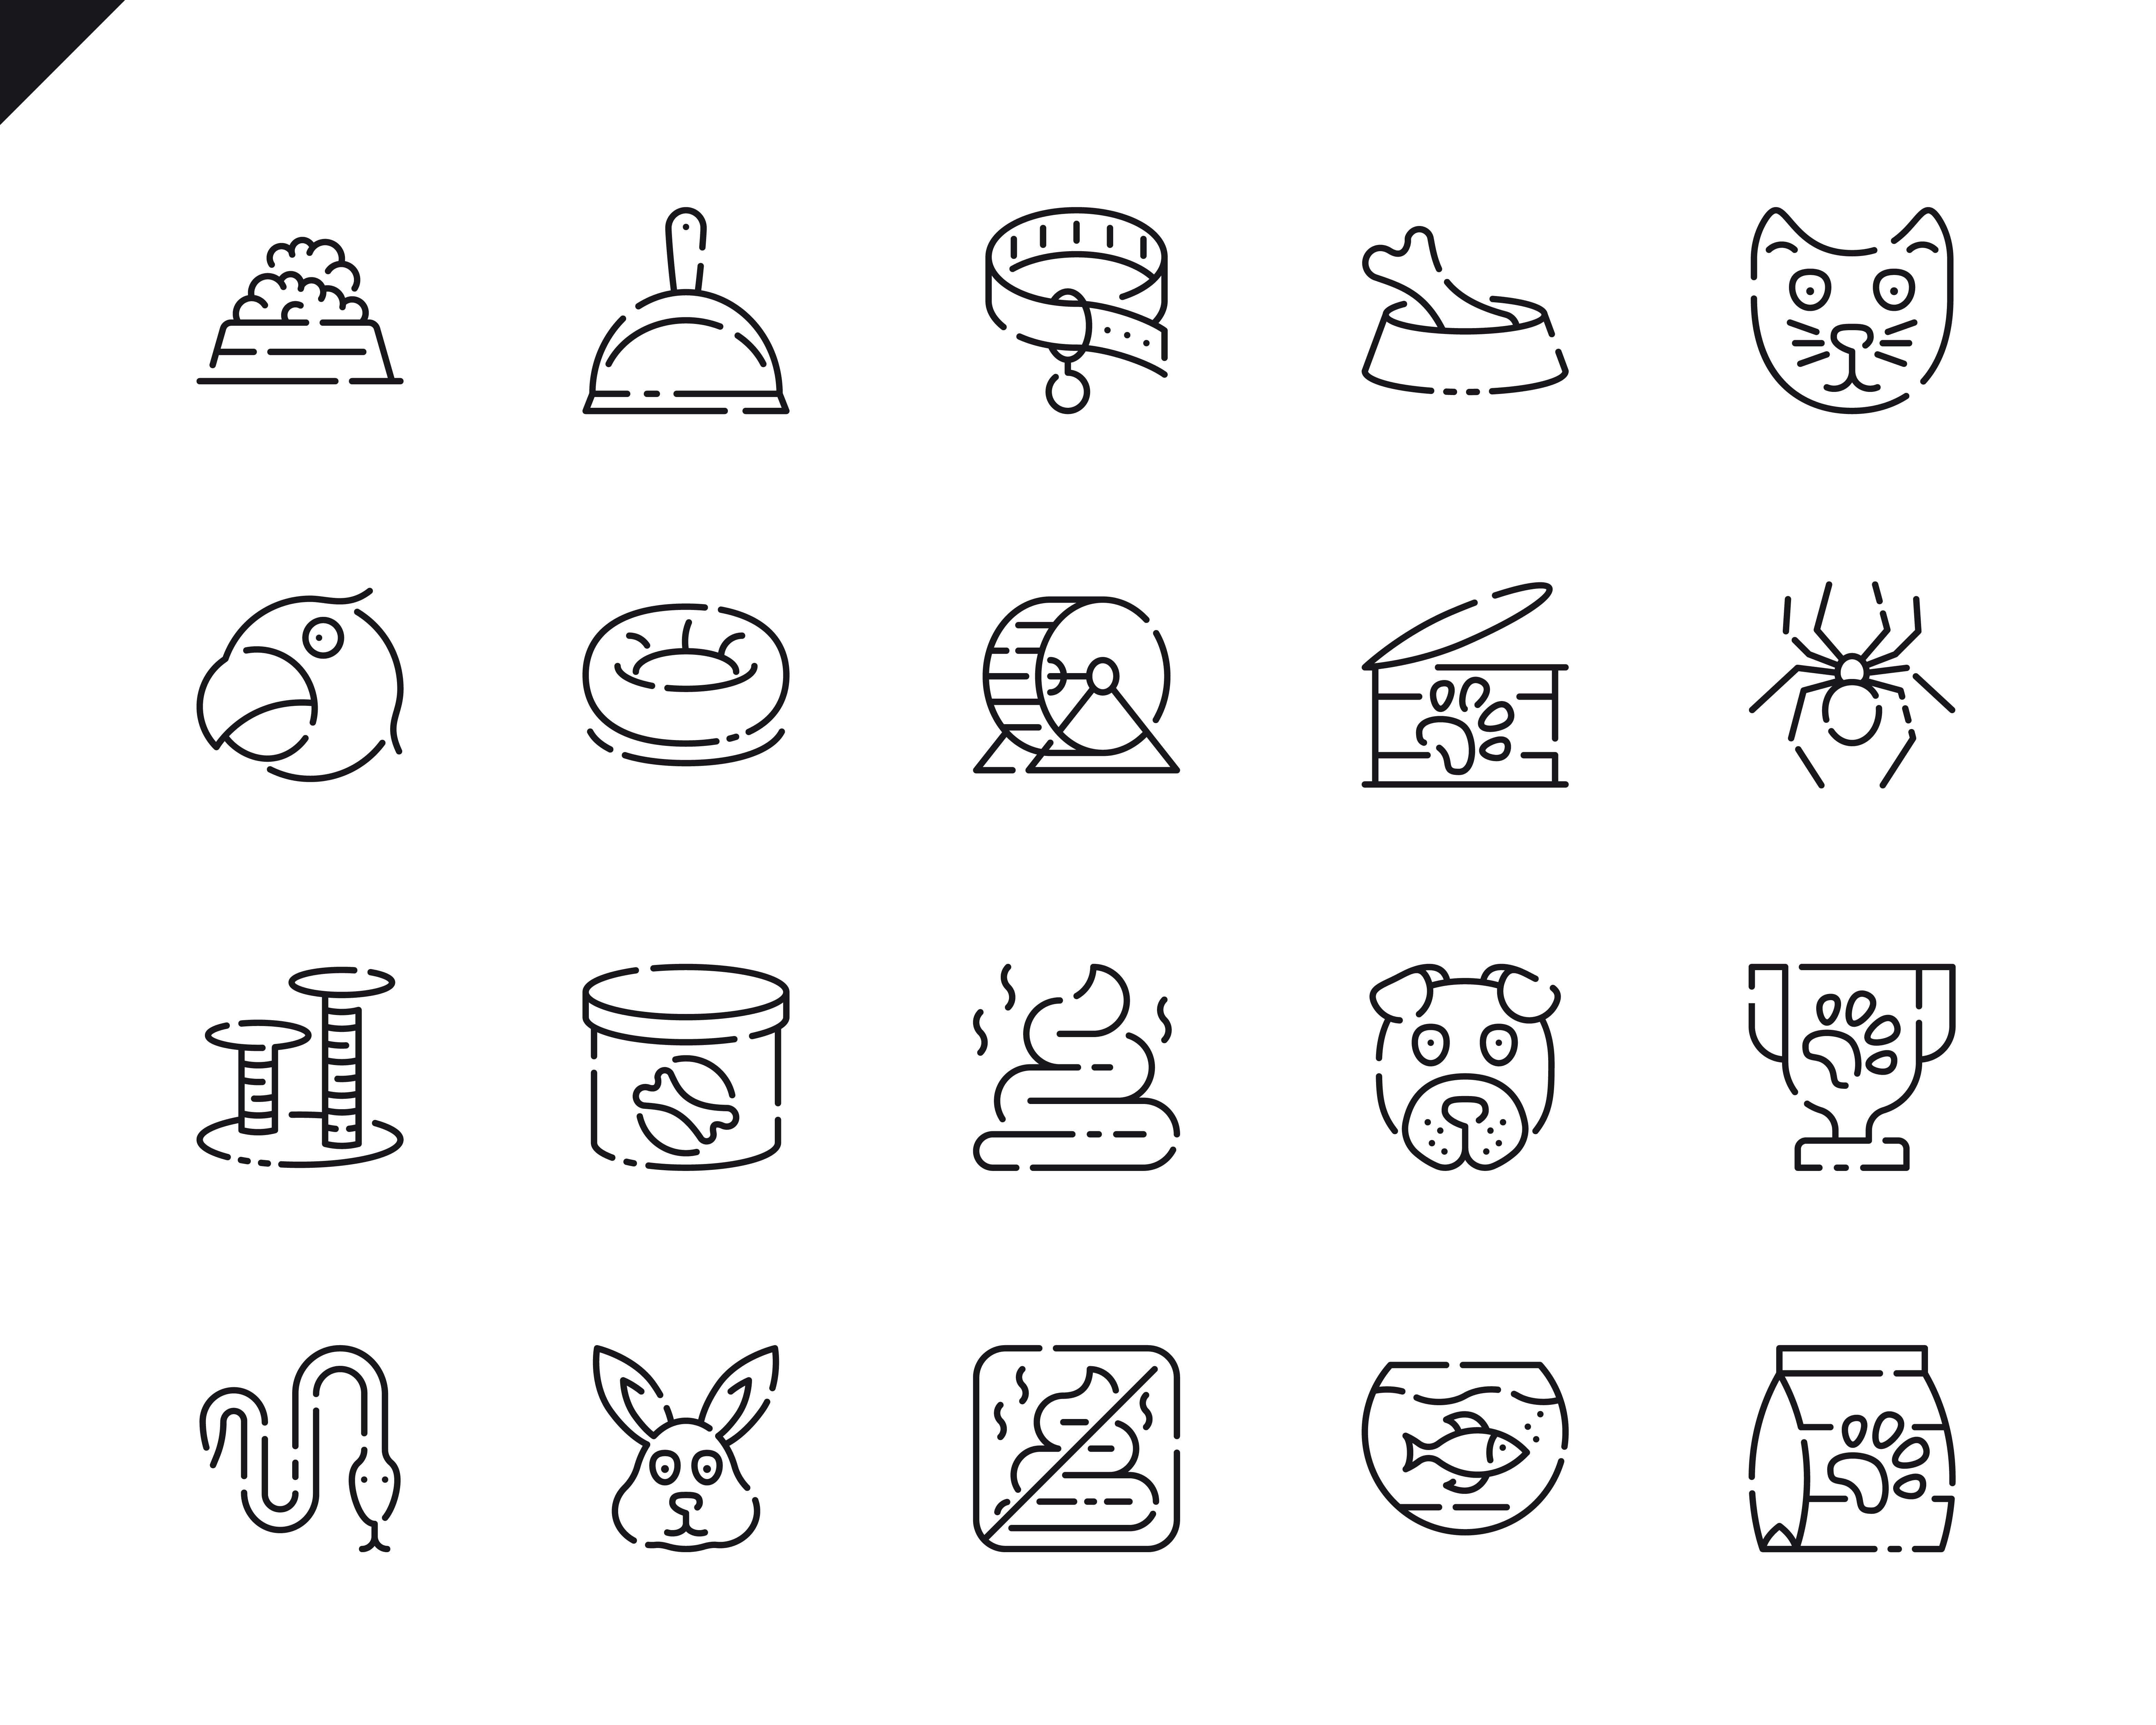 500 Business Line Icons - $22 ONLY - 7 4